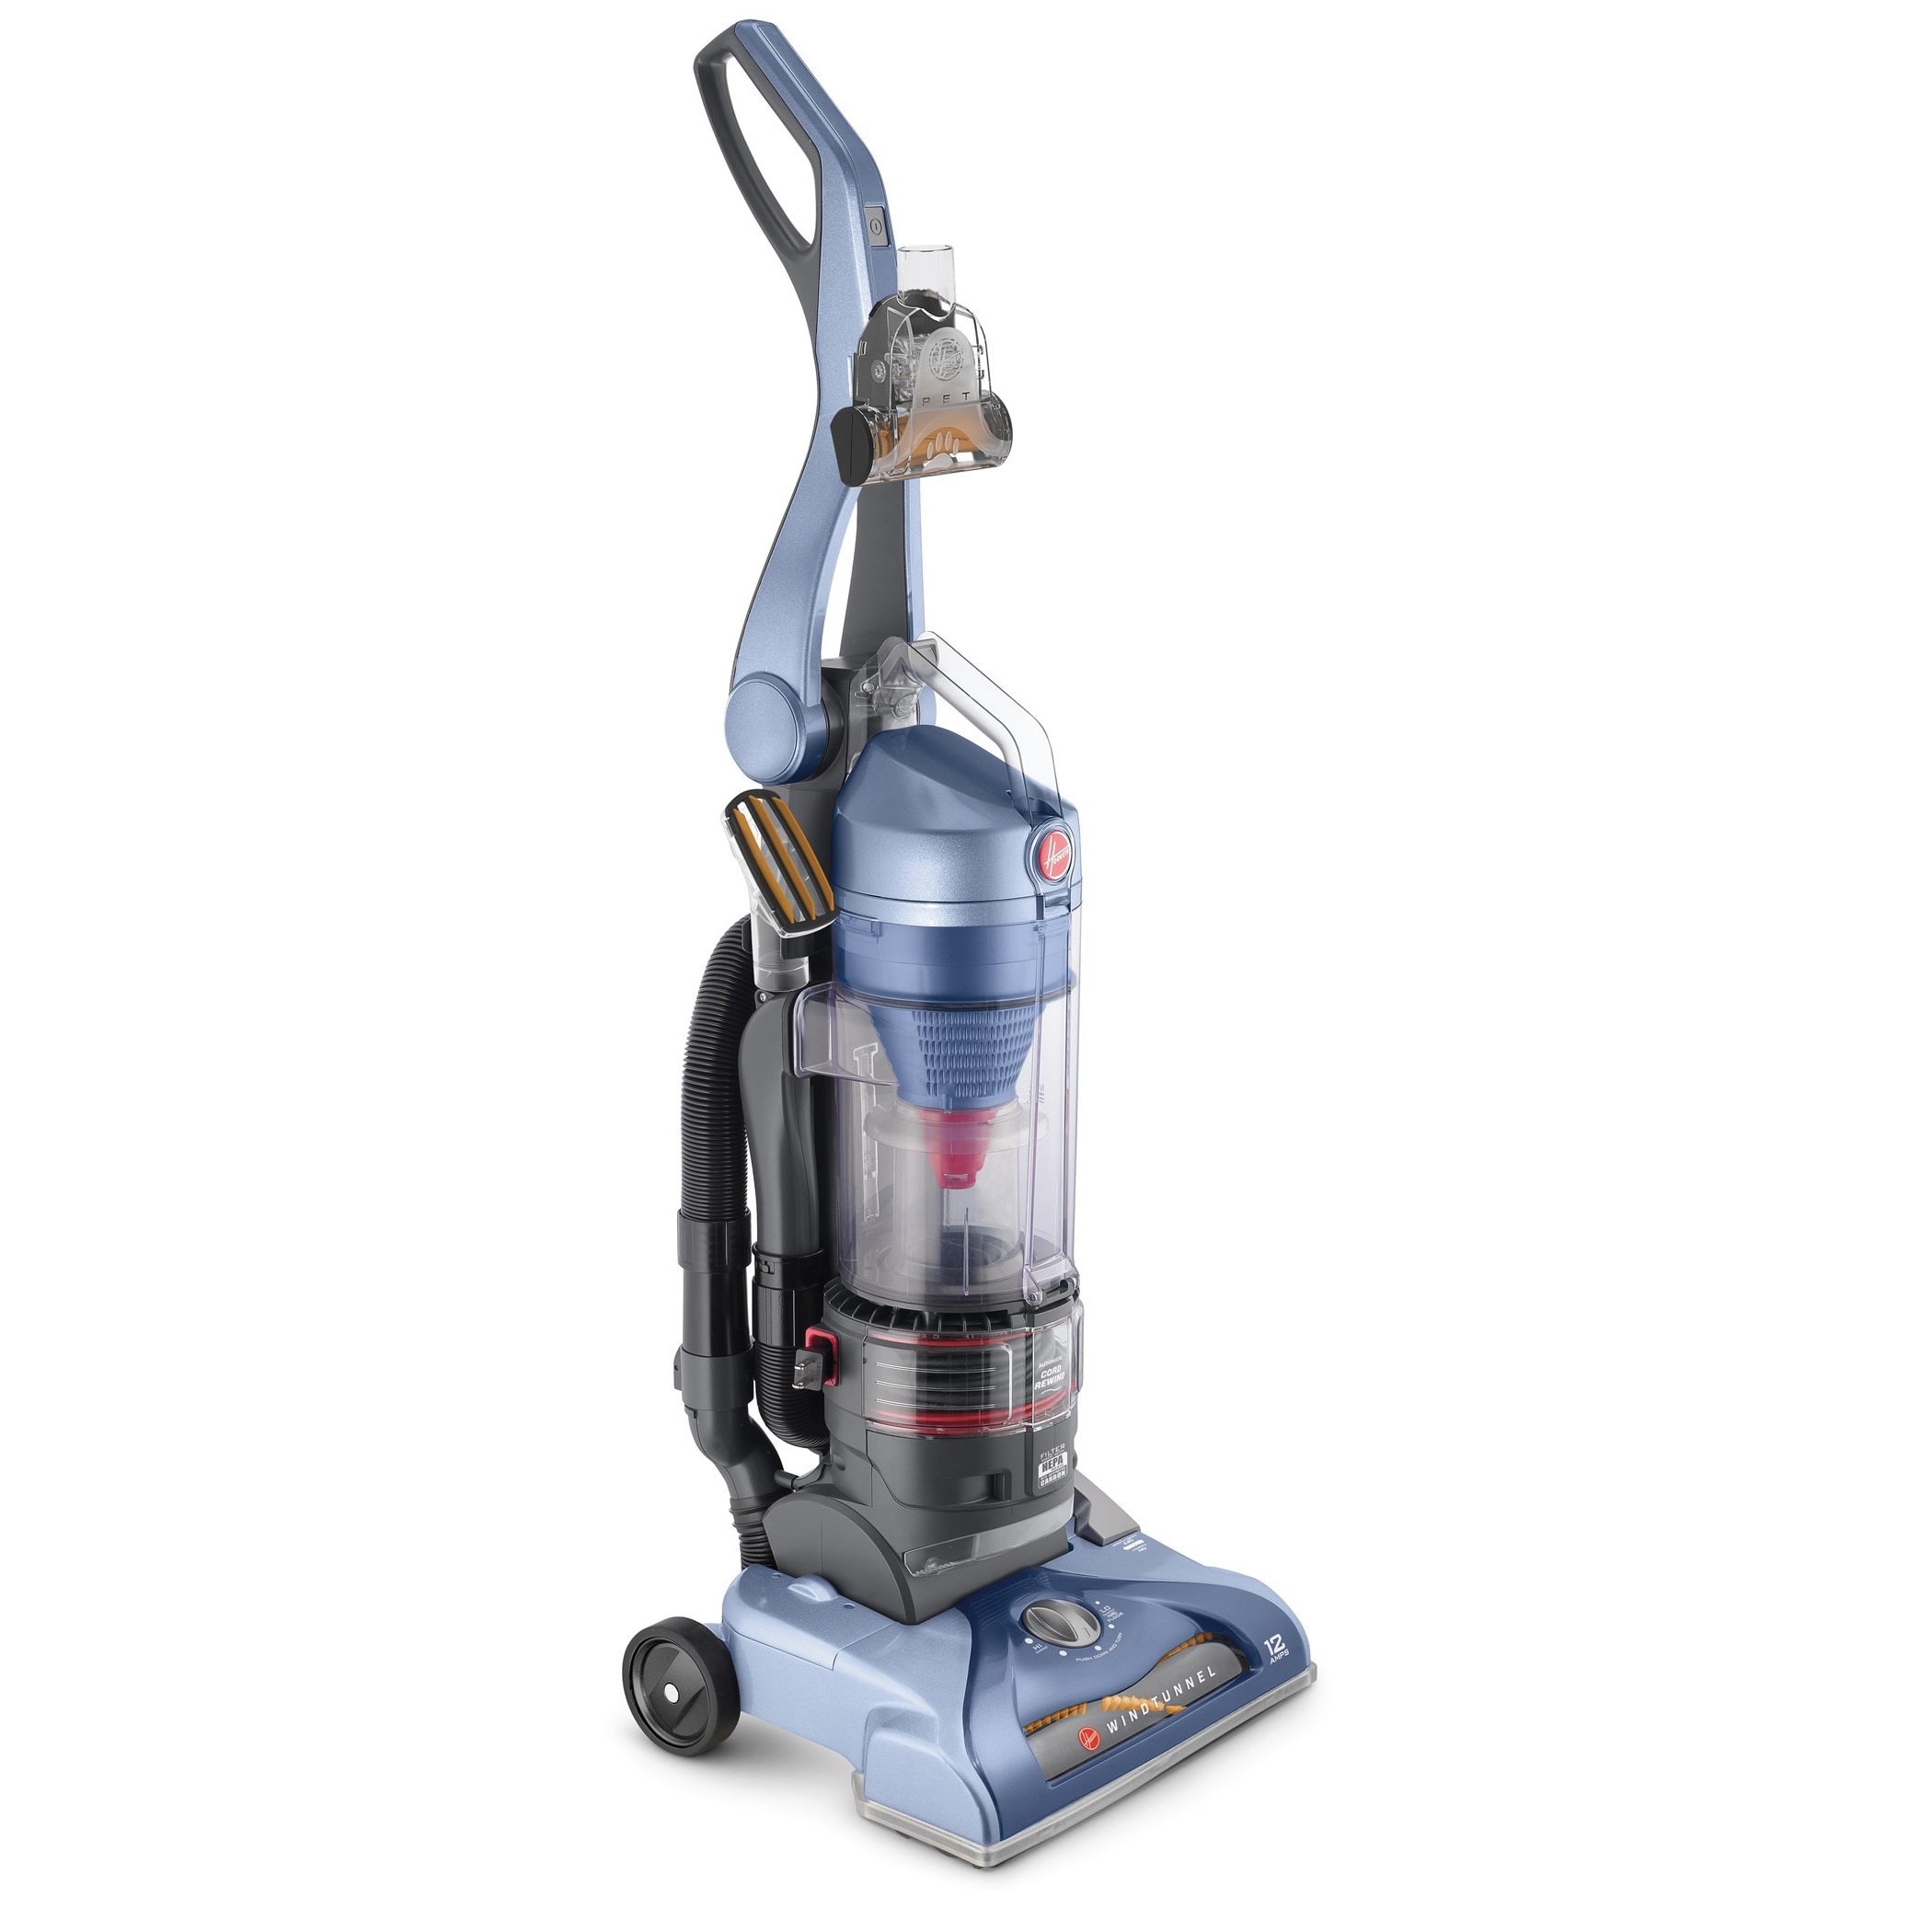 1d65c3f3 c15b 4b53 b823 0097b279984a_1.a9aa73cd0e3c906c17569d5bd99fa79d hoover windtunnel pet rewind bagless upright vacuum, uh70210  at n-0.co